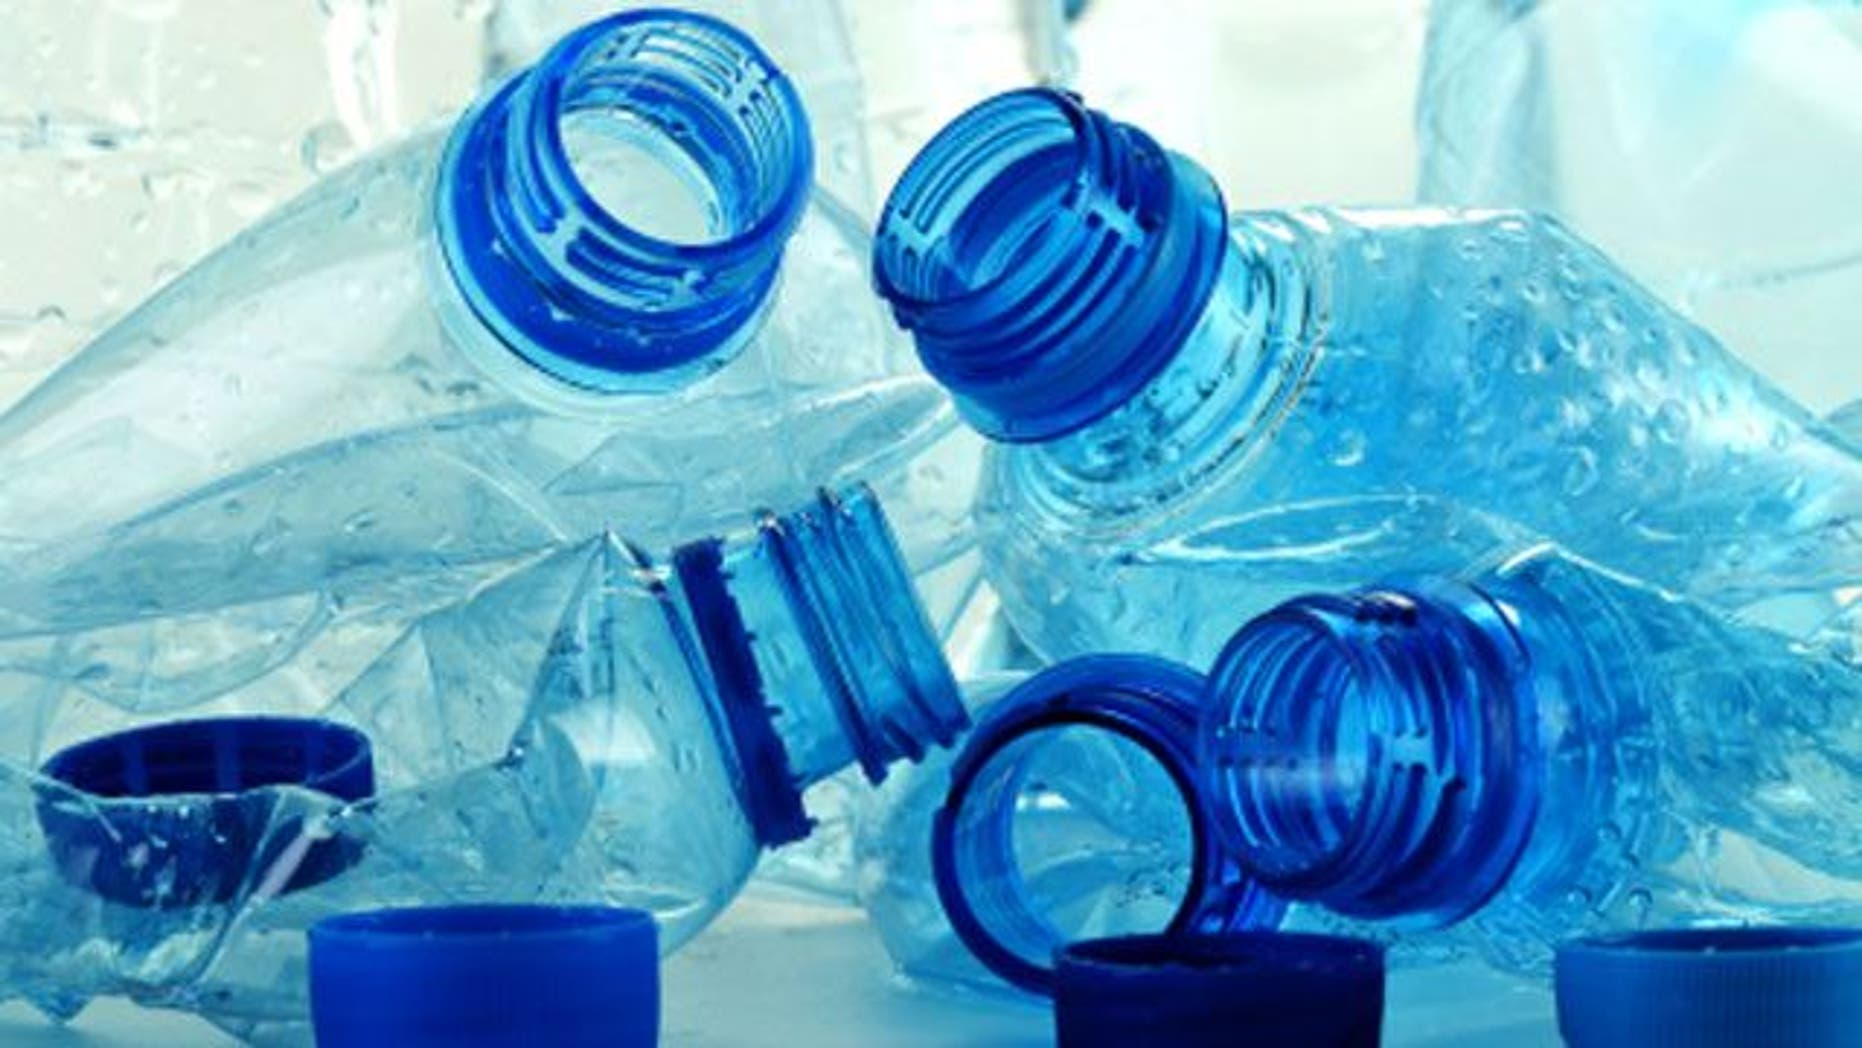 10 ways to rid your body of toxic chemicals | Fox News